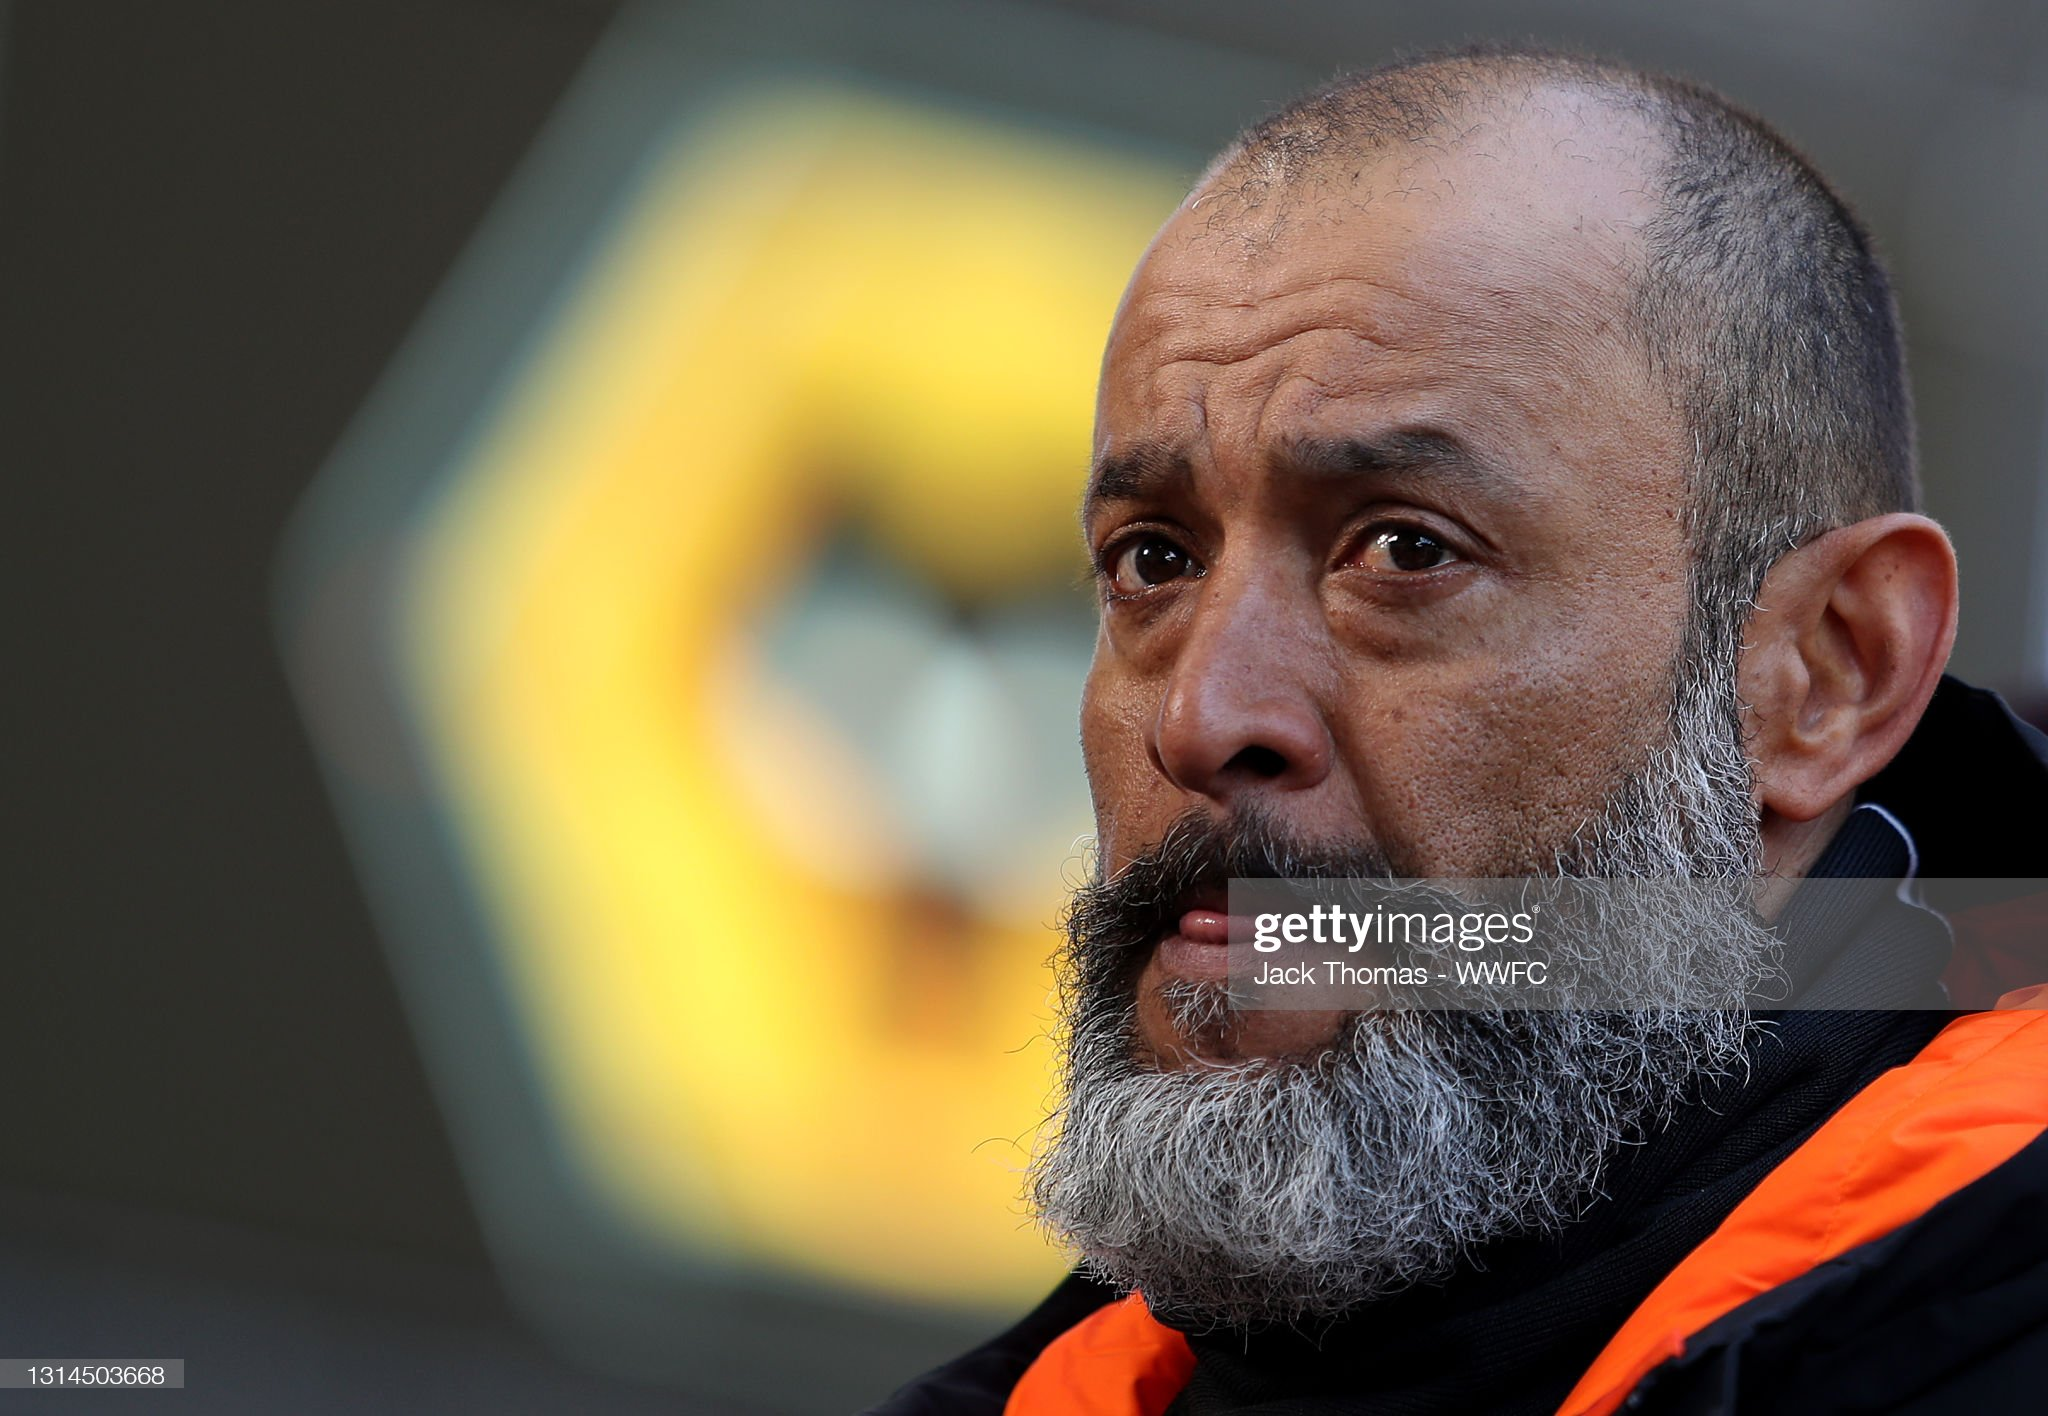 Has the time come for Wolves to sack Nuno?